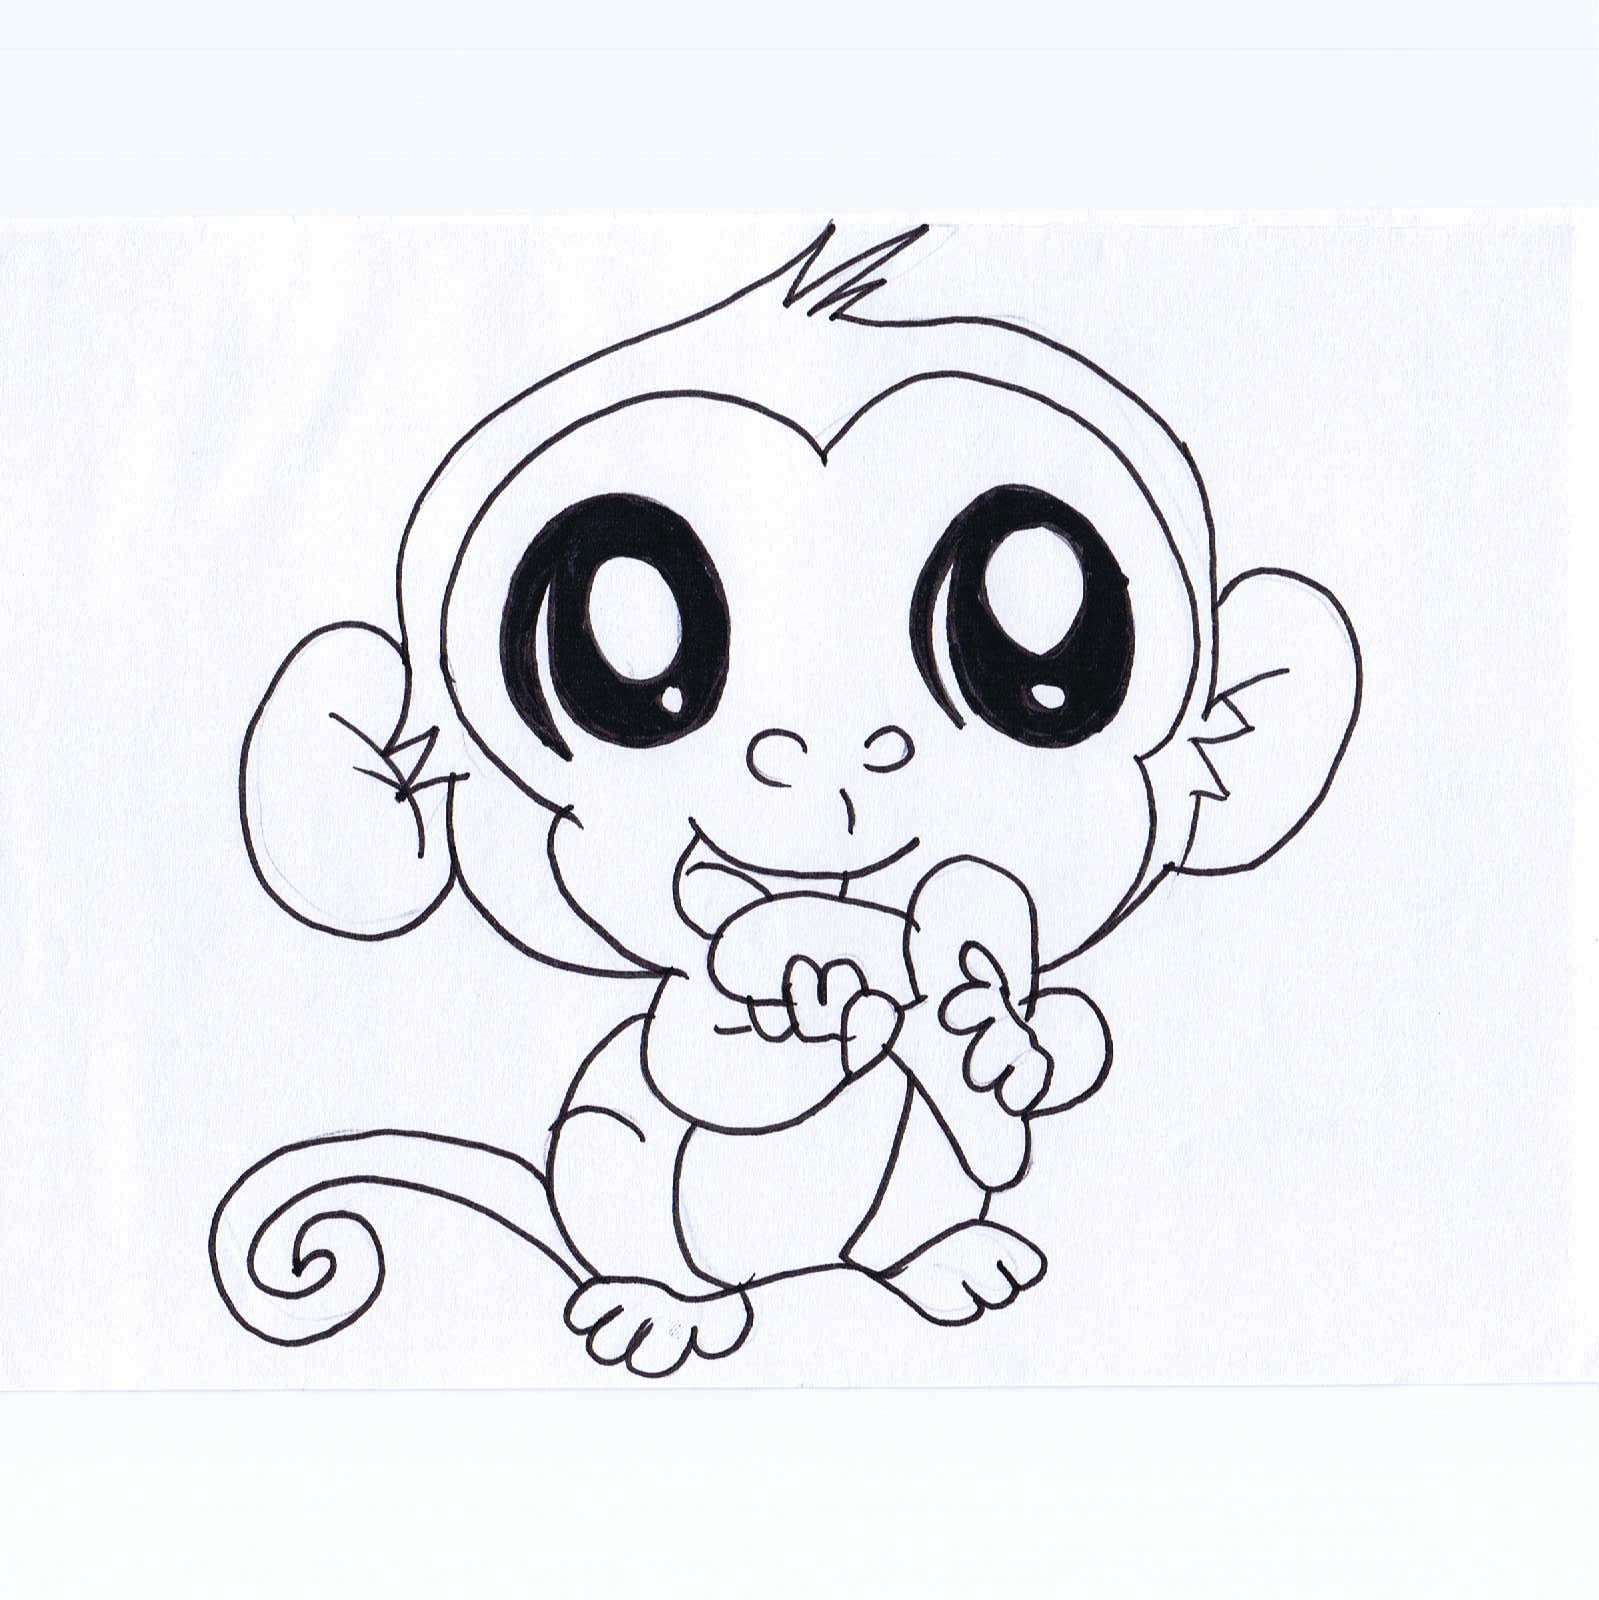 1599x1600 Drawing Cartoon Animals With Big Eyes Drawn Puppy Big Eye